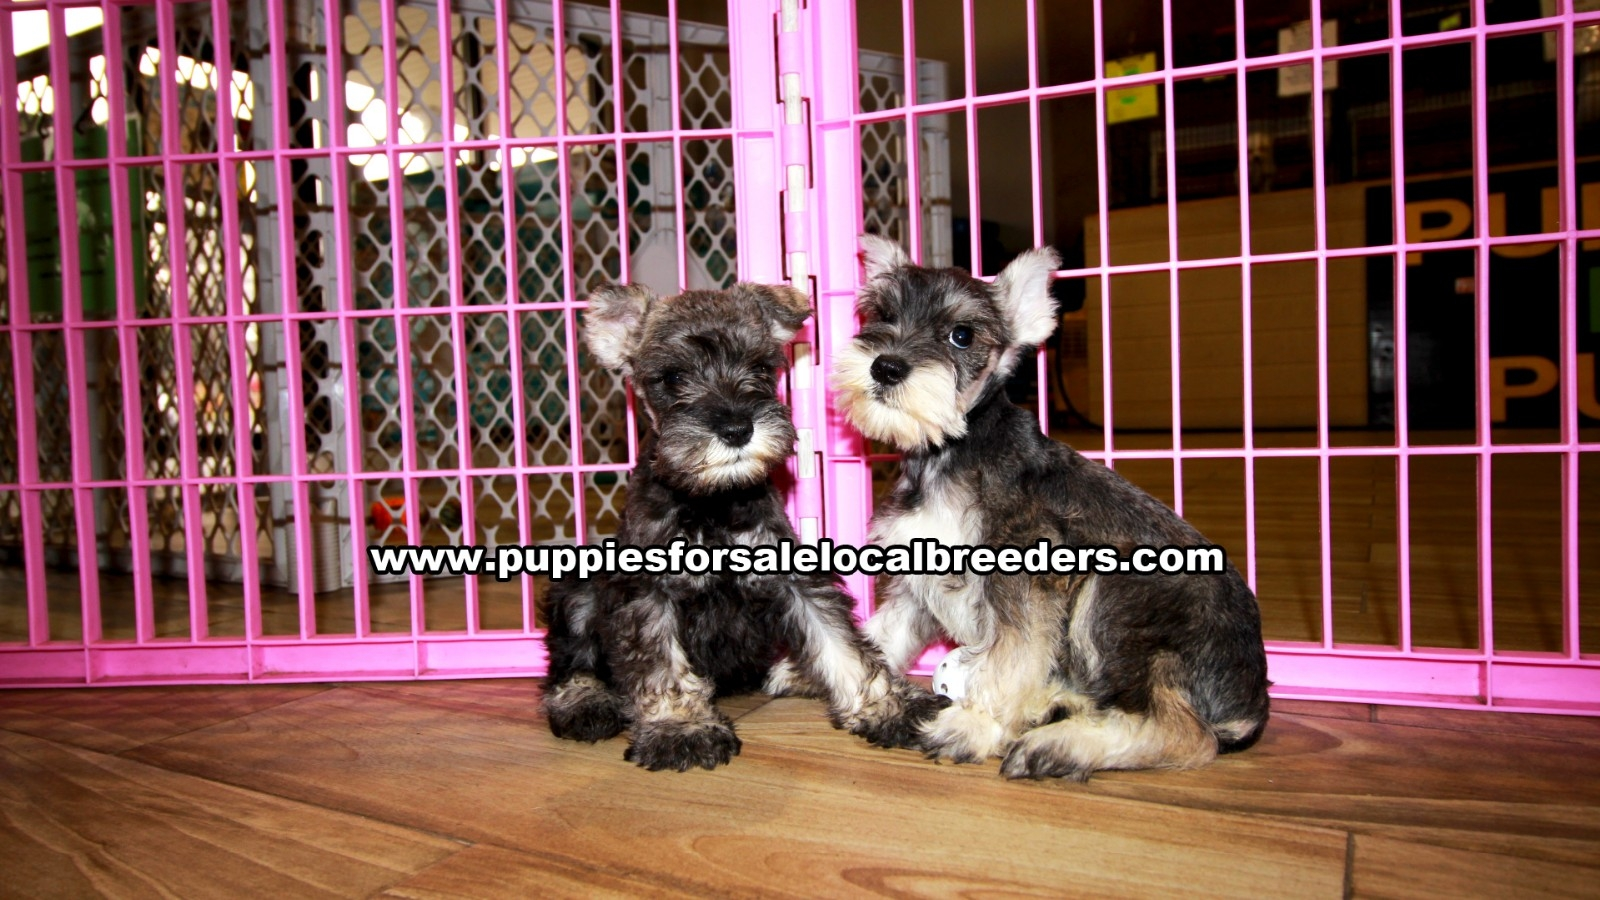 Salt & Pepper Mini Schnauzer, Puppies For Sale In Georgia, Local Breeders, Near Atlanta, Ga